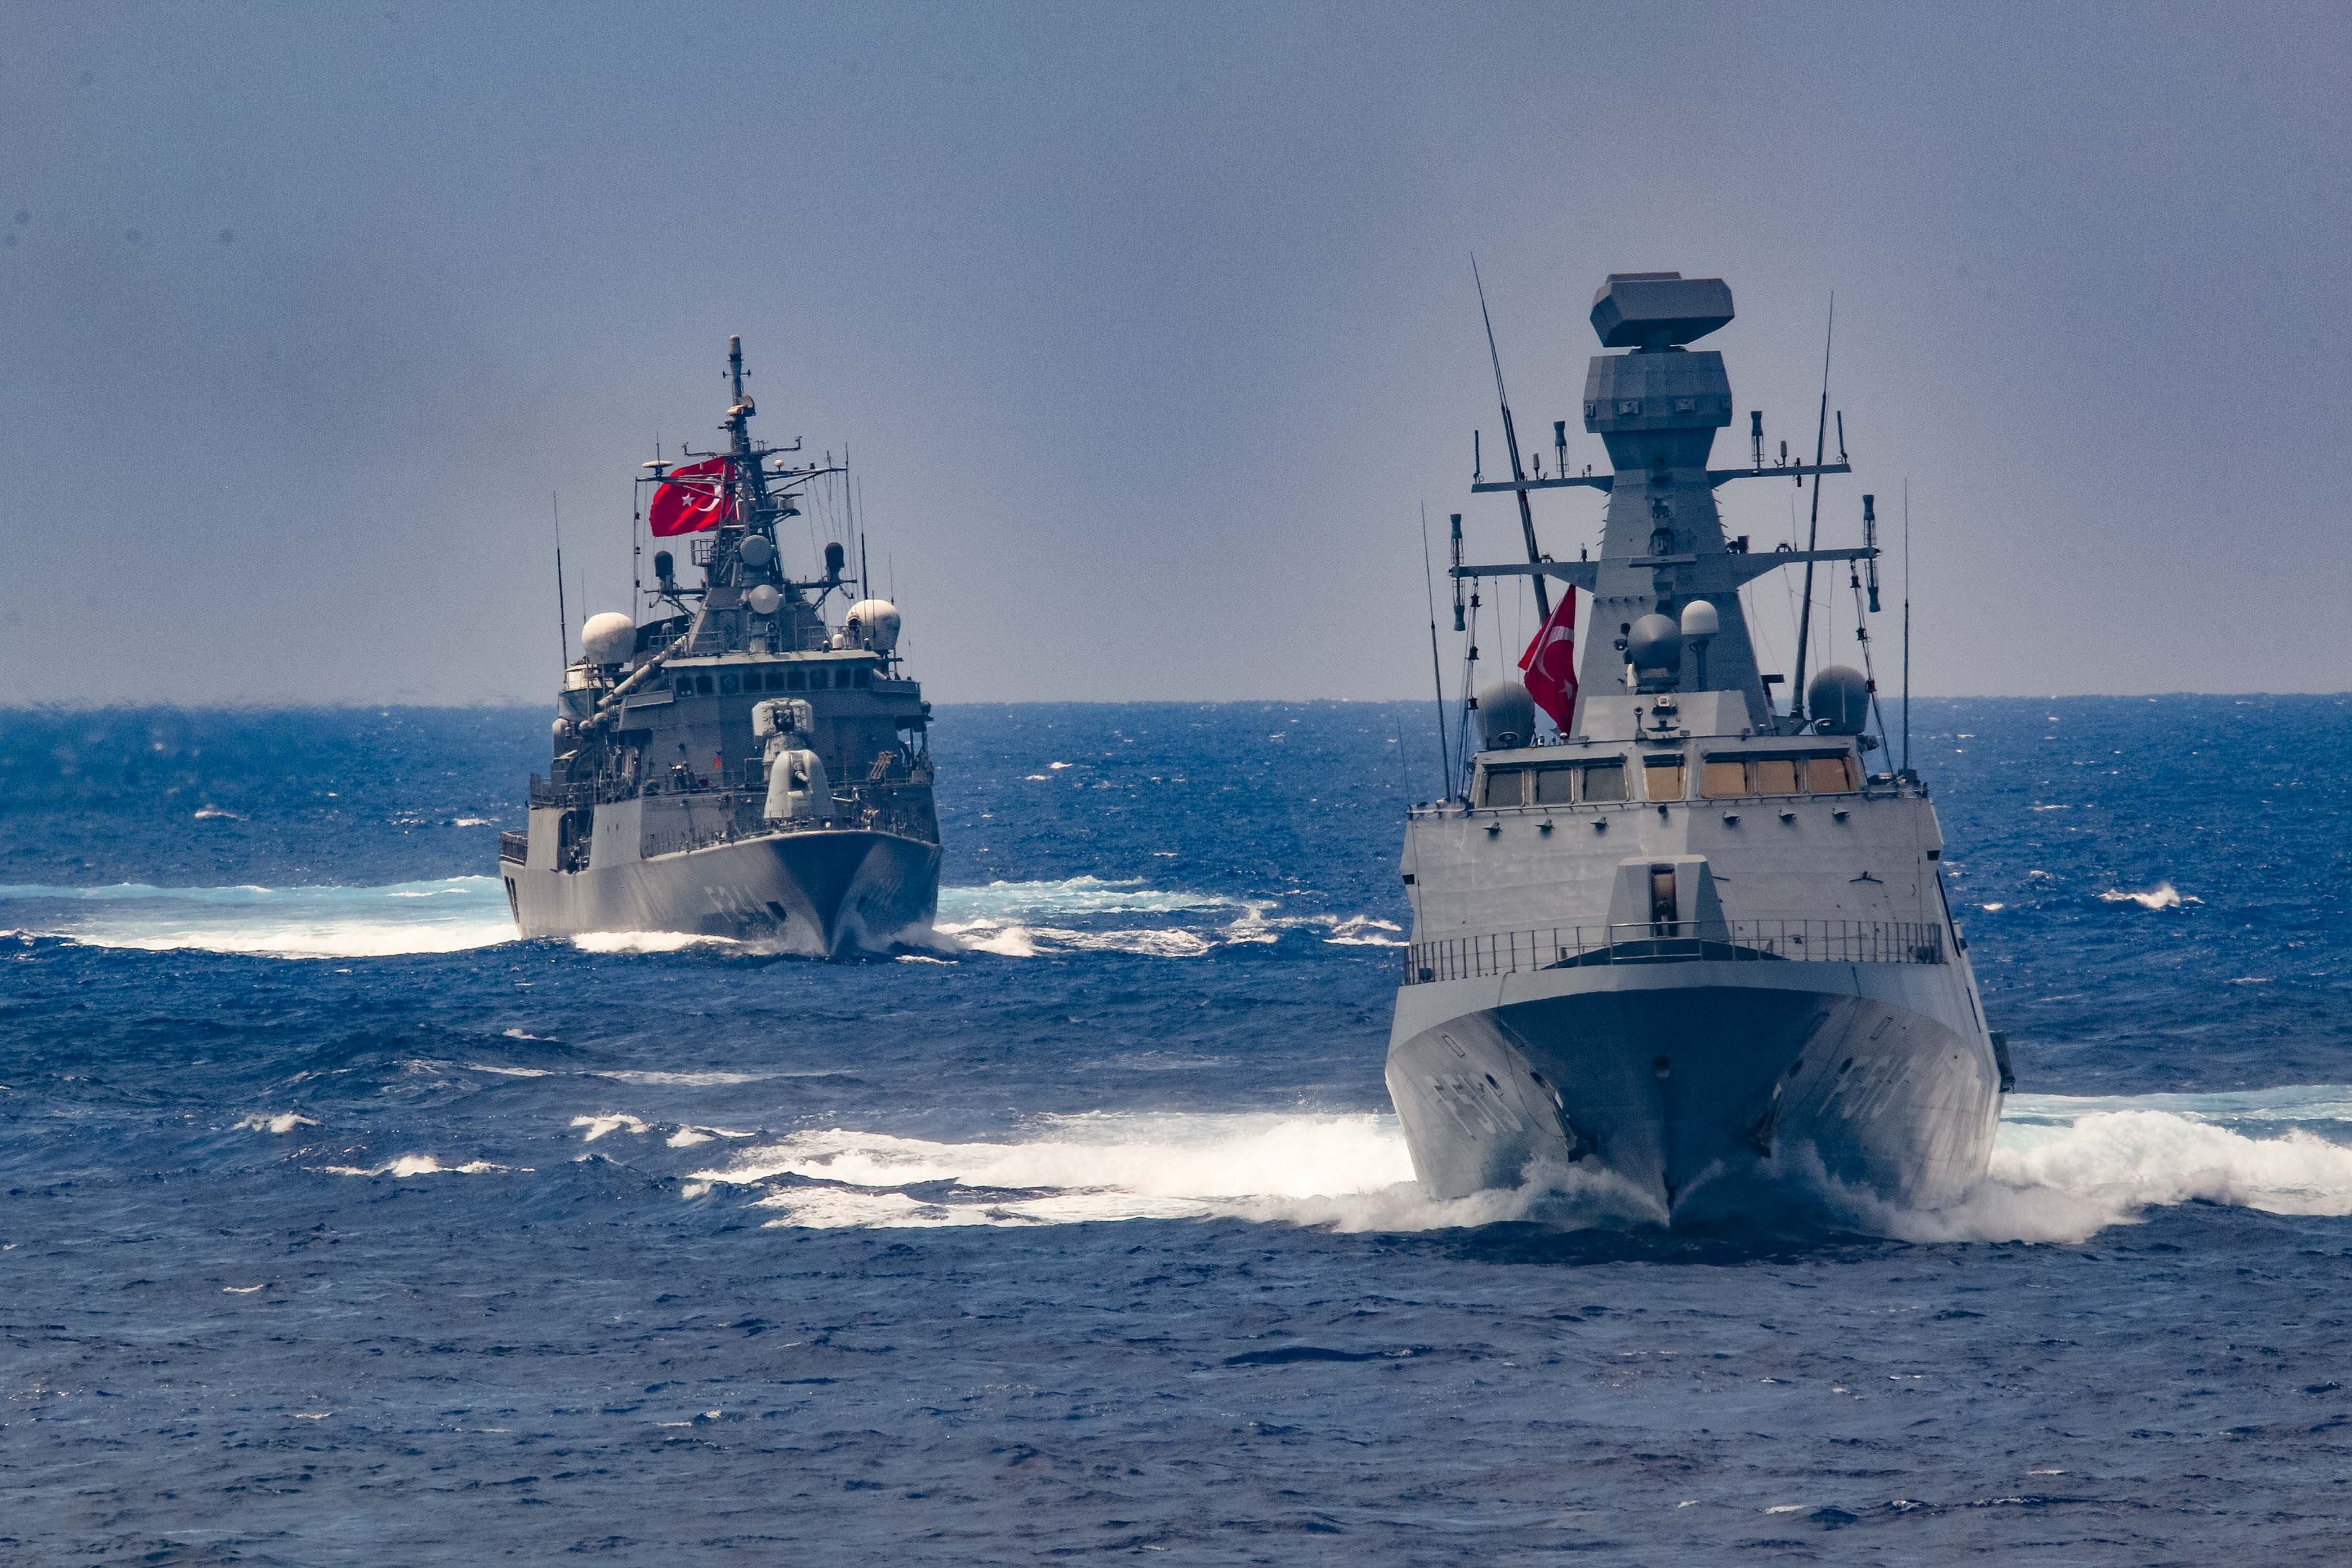 Turkey, Europe, and the Eastern Mediterranean: Charting a way out of the current deadlock